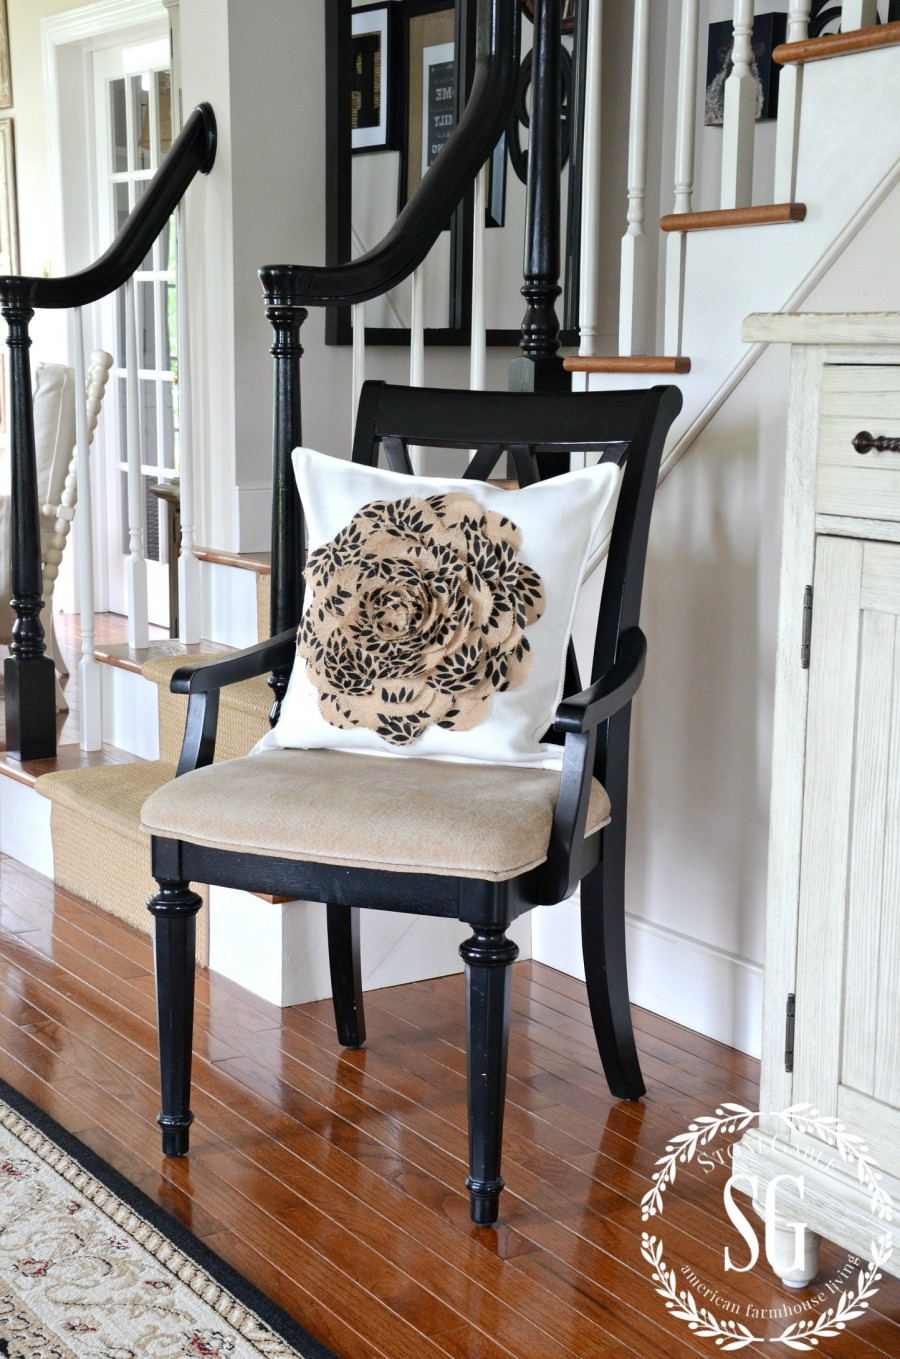 Foyer Chair : Creating a welcoming foyer stonegable